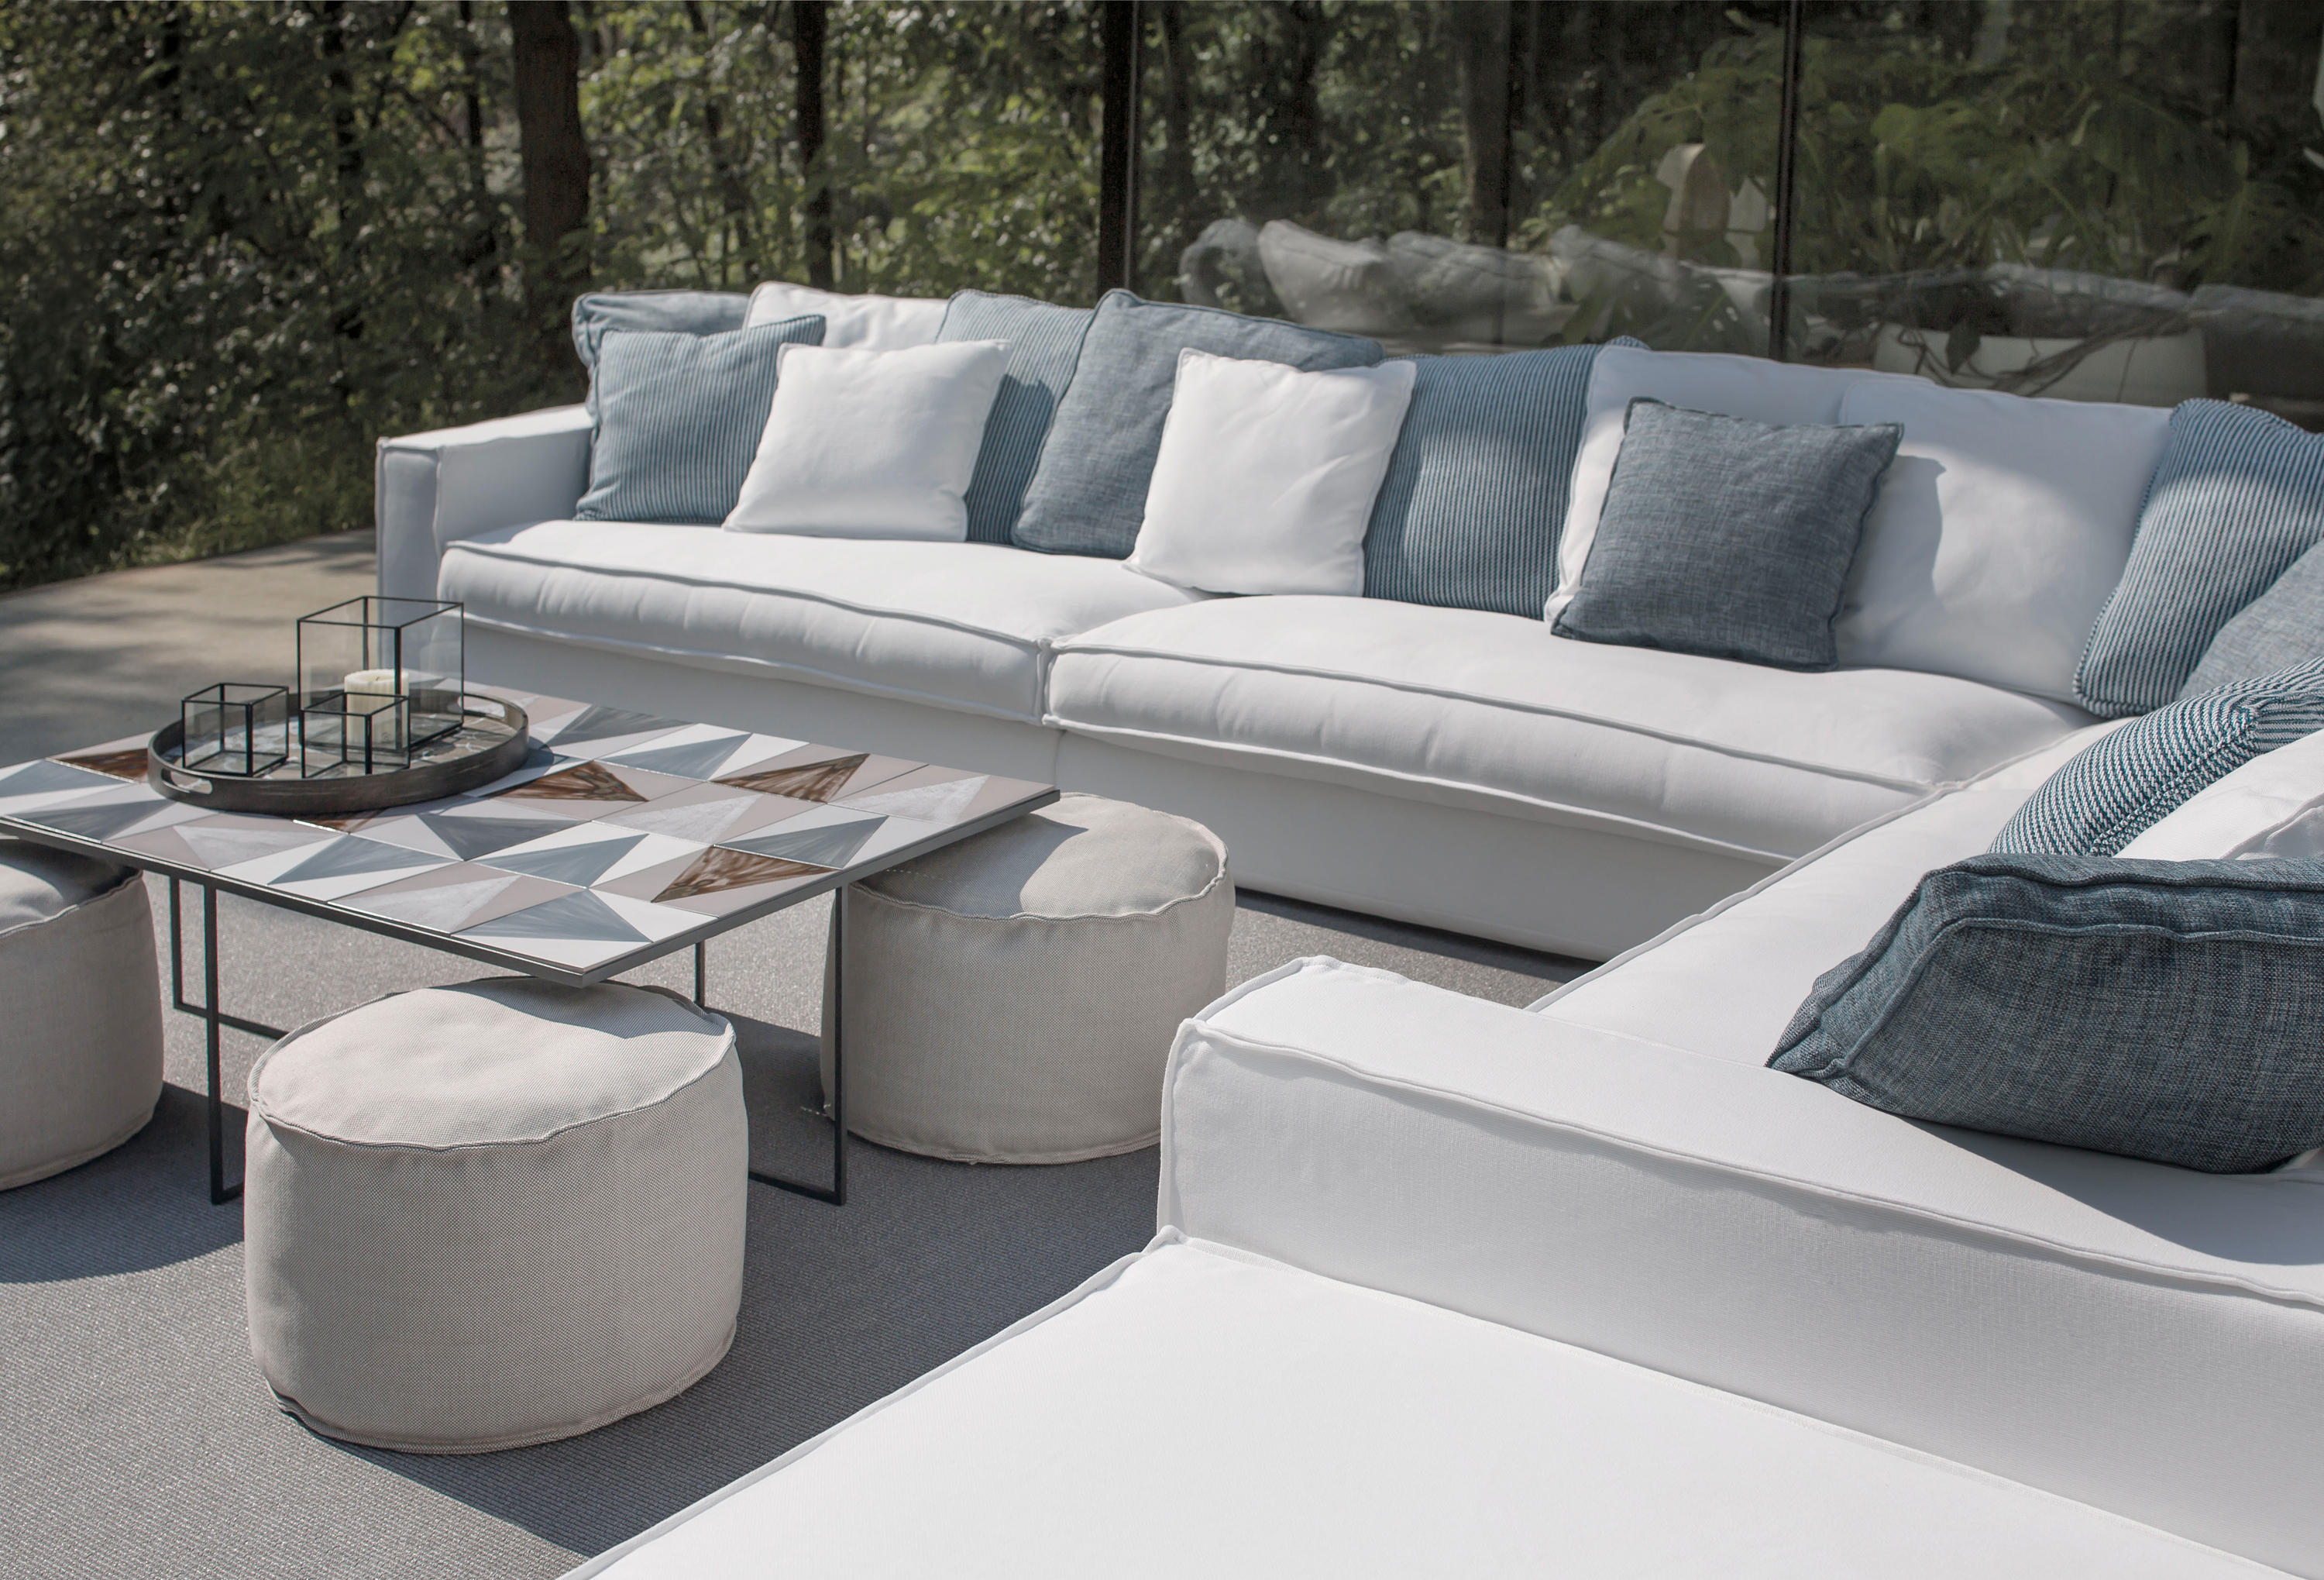 Cayo Largo Sofas From Villevenete Architonic